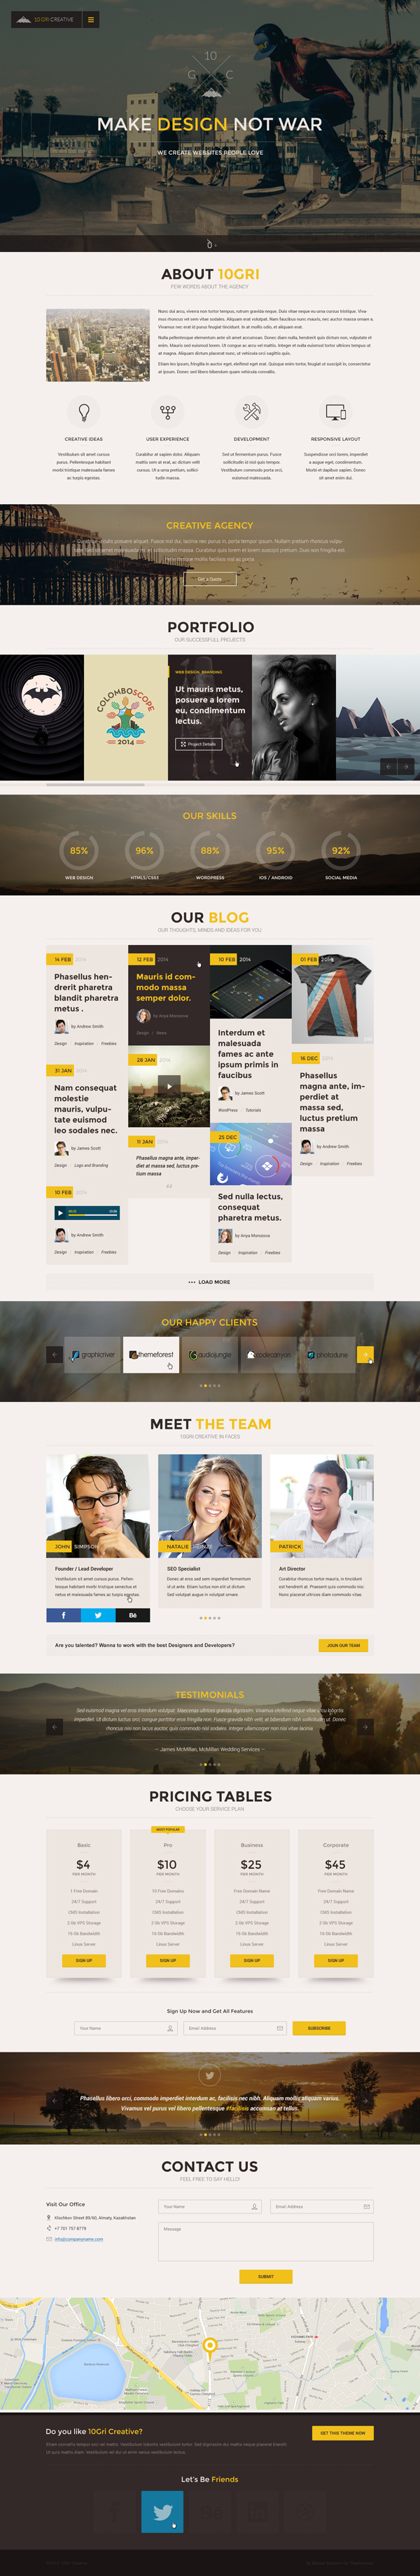 10GriCreative - OnePage PSD HTML5 Theme